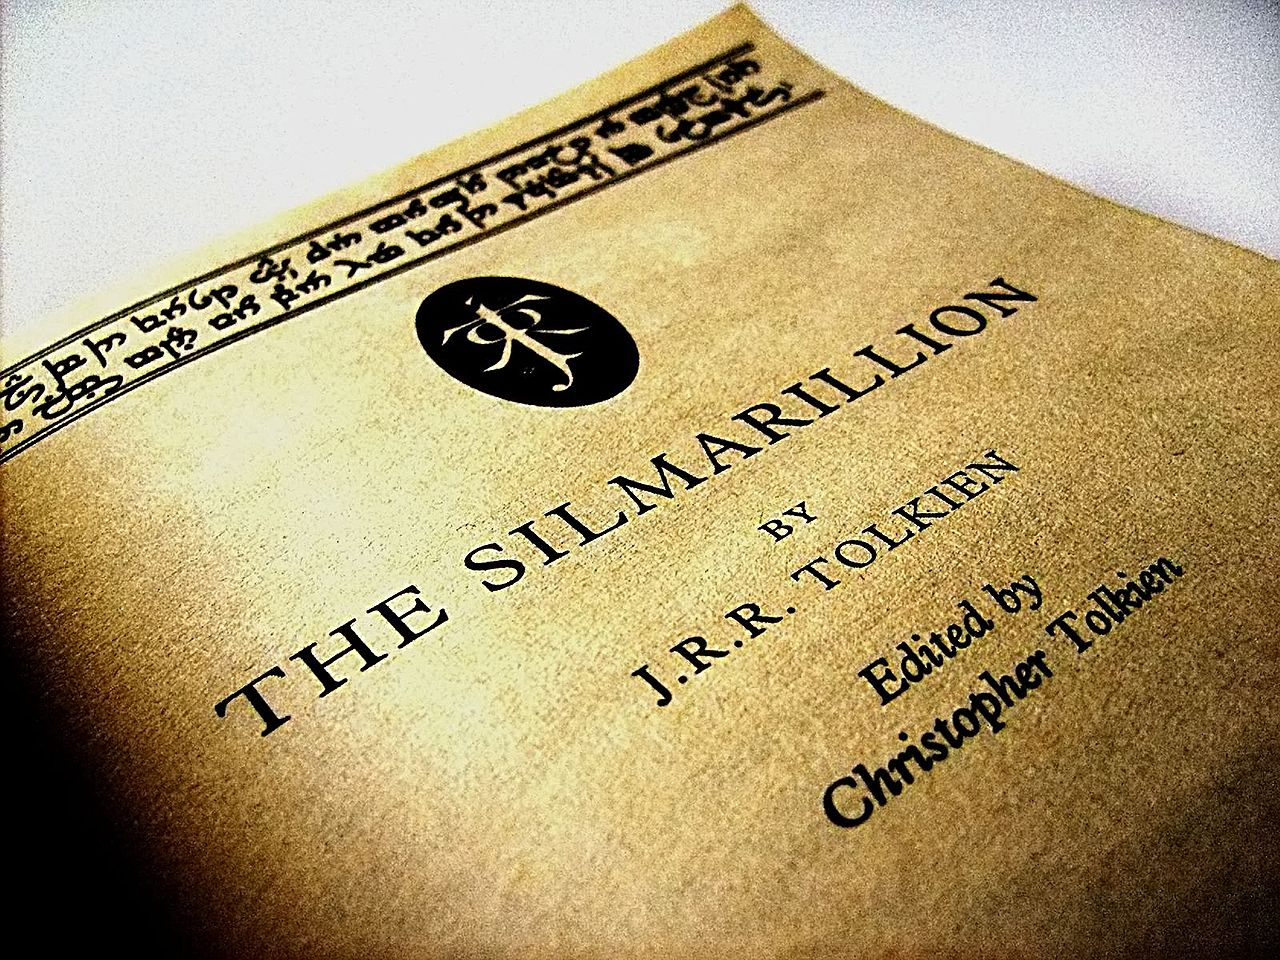 1280px-Silmarrillion,_Just_under_the_Cover